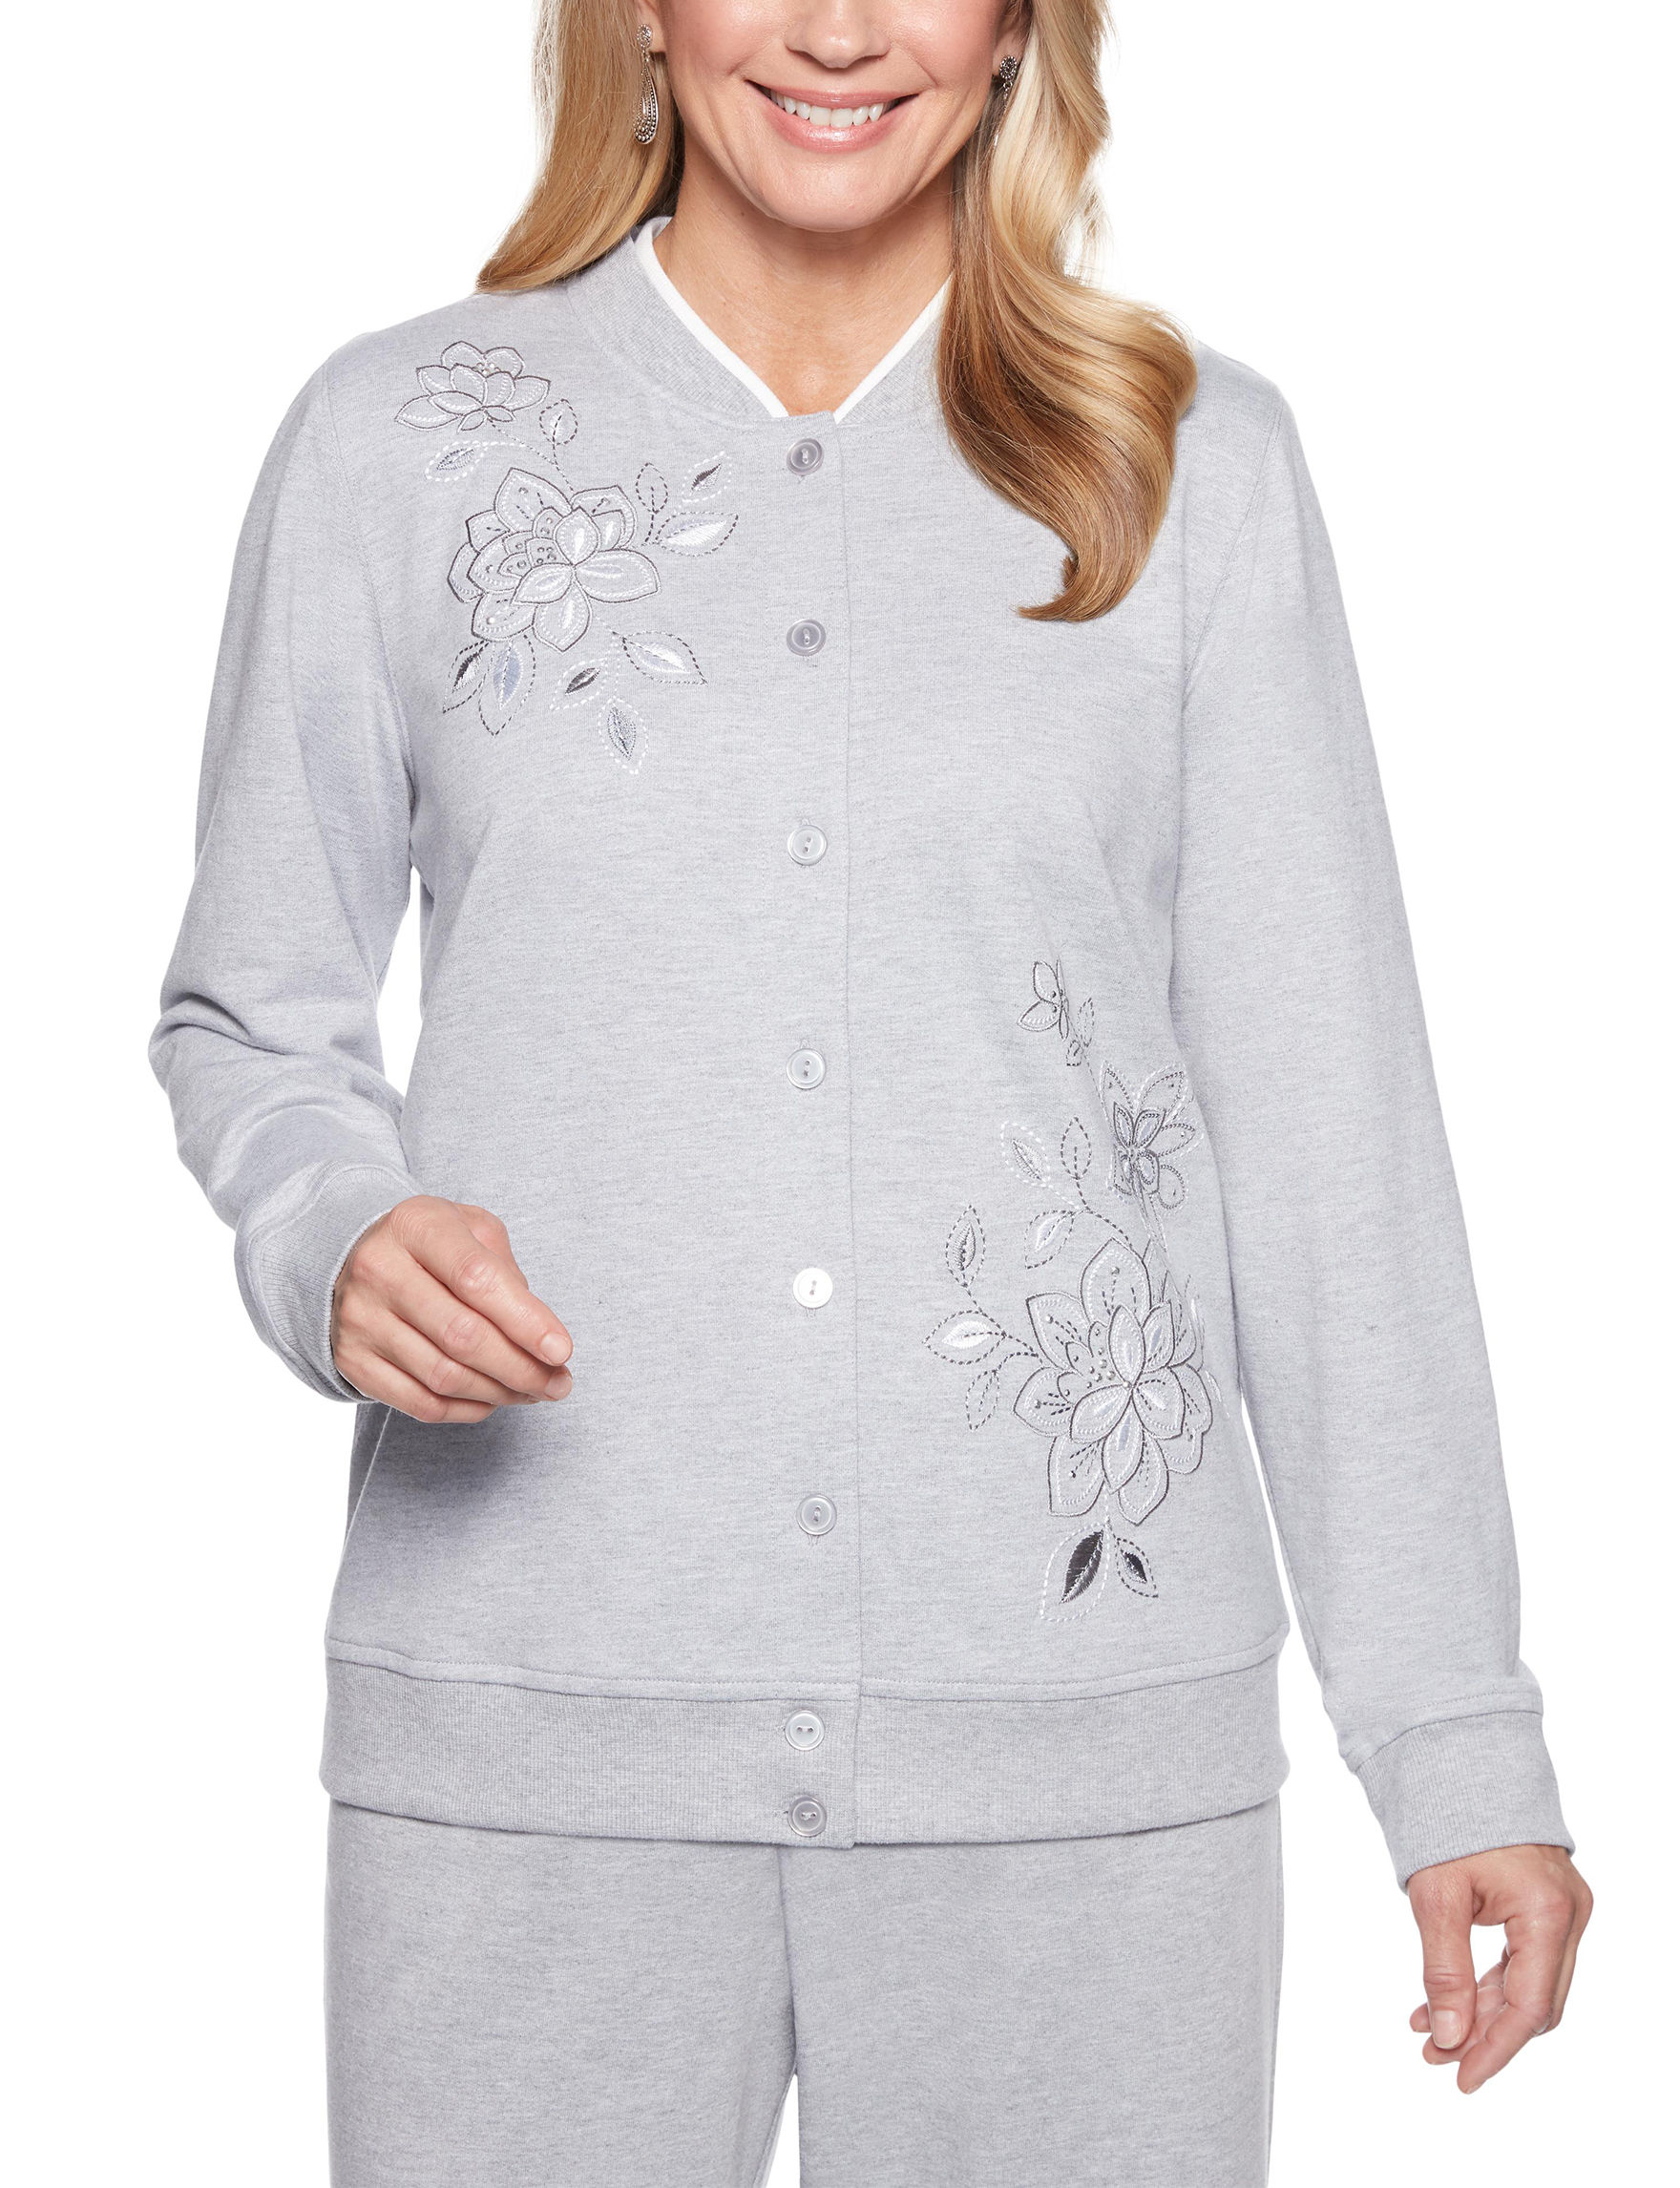 Alfred Dunner Grey Cardigans Shirts & Blouses